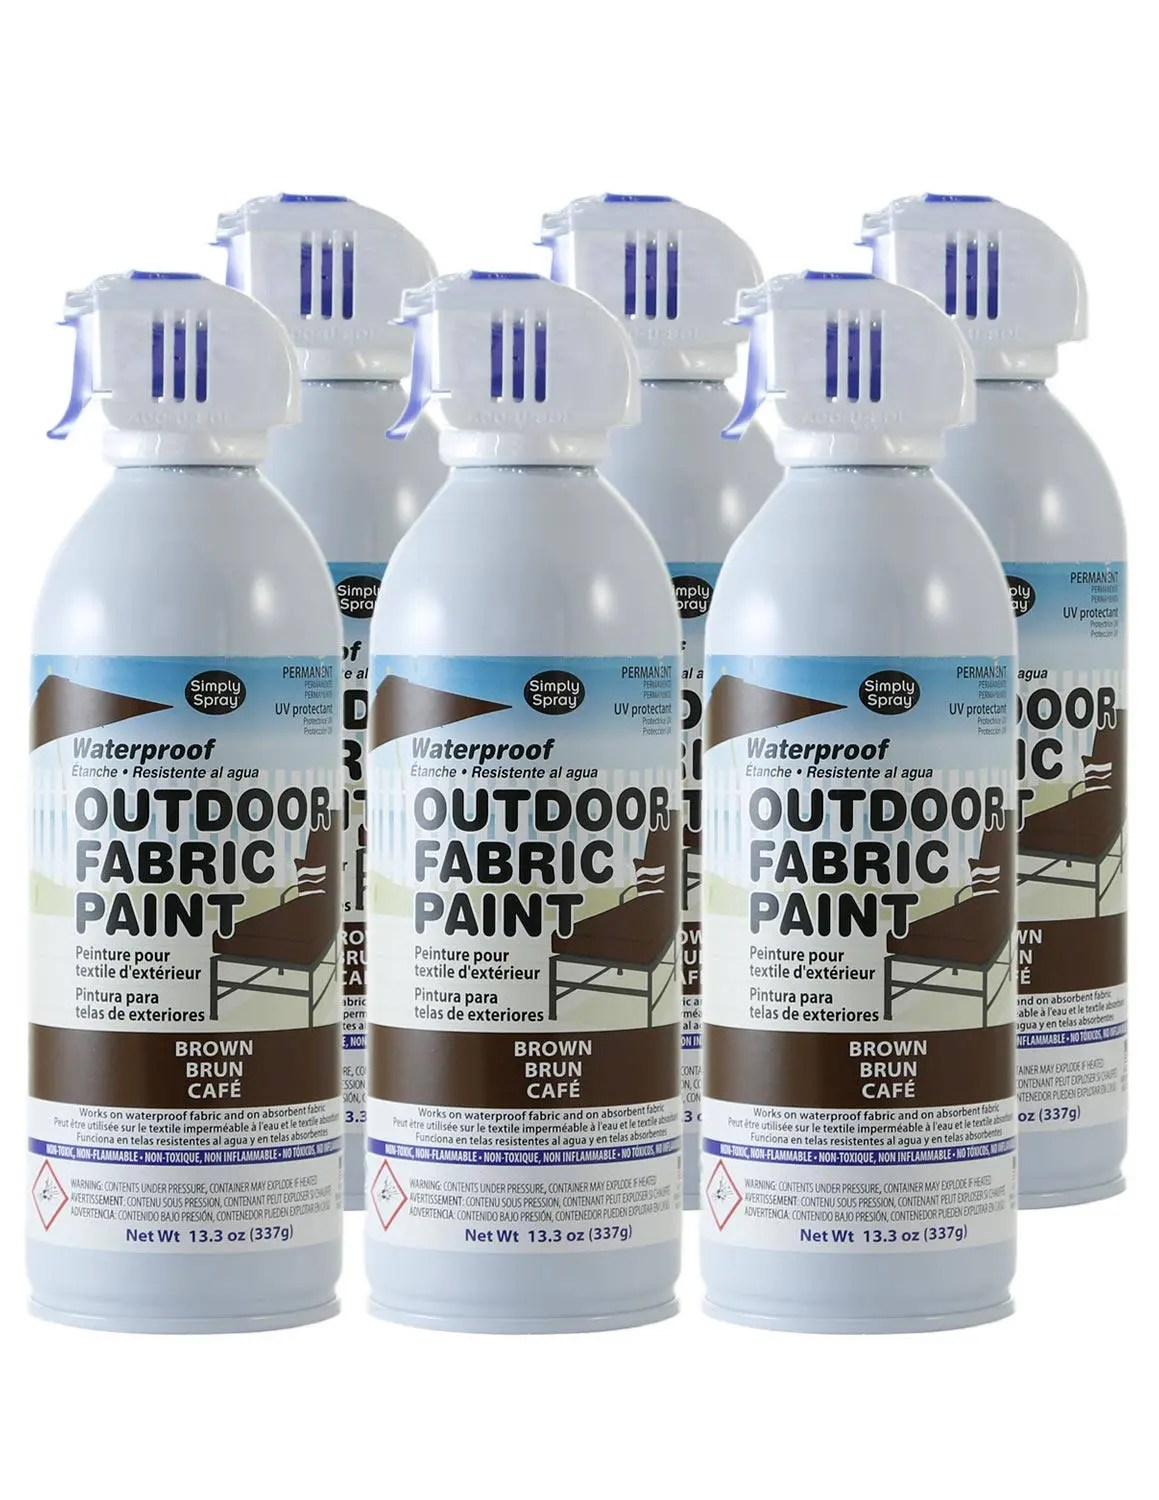 Simply Spray Outdoor Waterproof Fabric Spray Paint Brown 6 - Waterproof Spray For Fabric